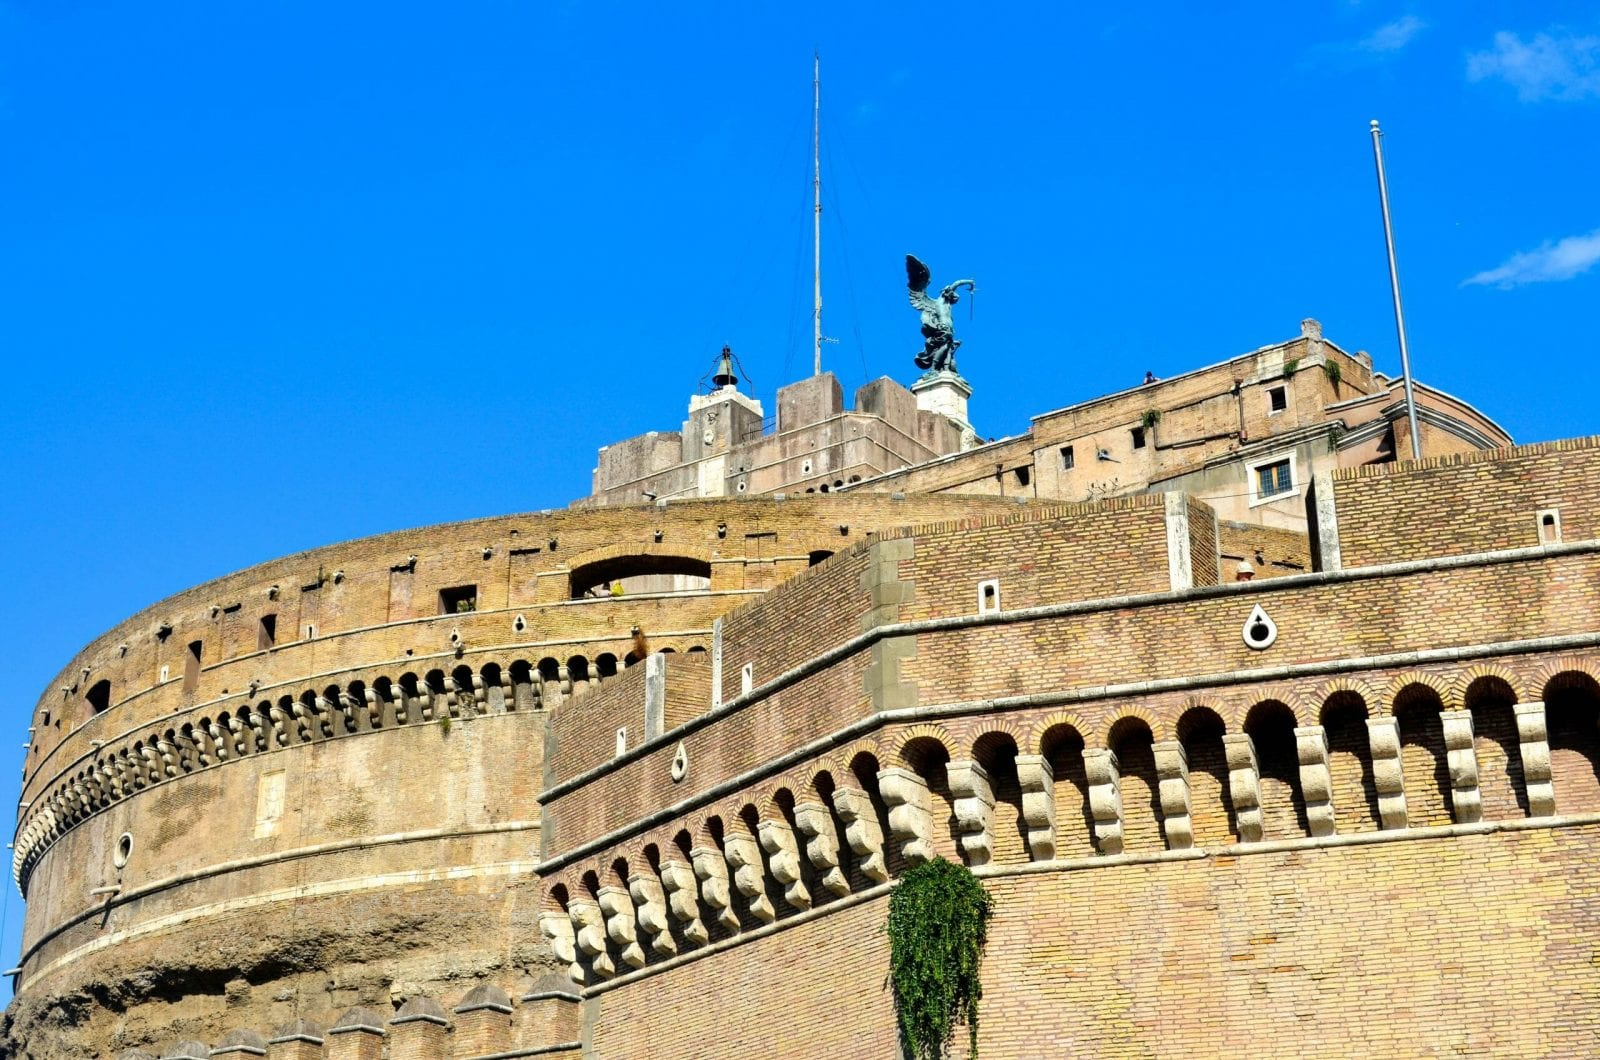 Angels Castle, Rome, Italy